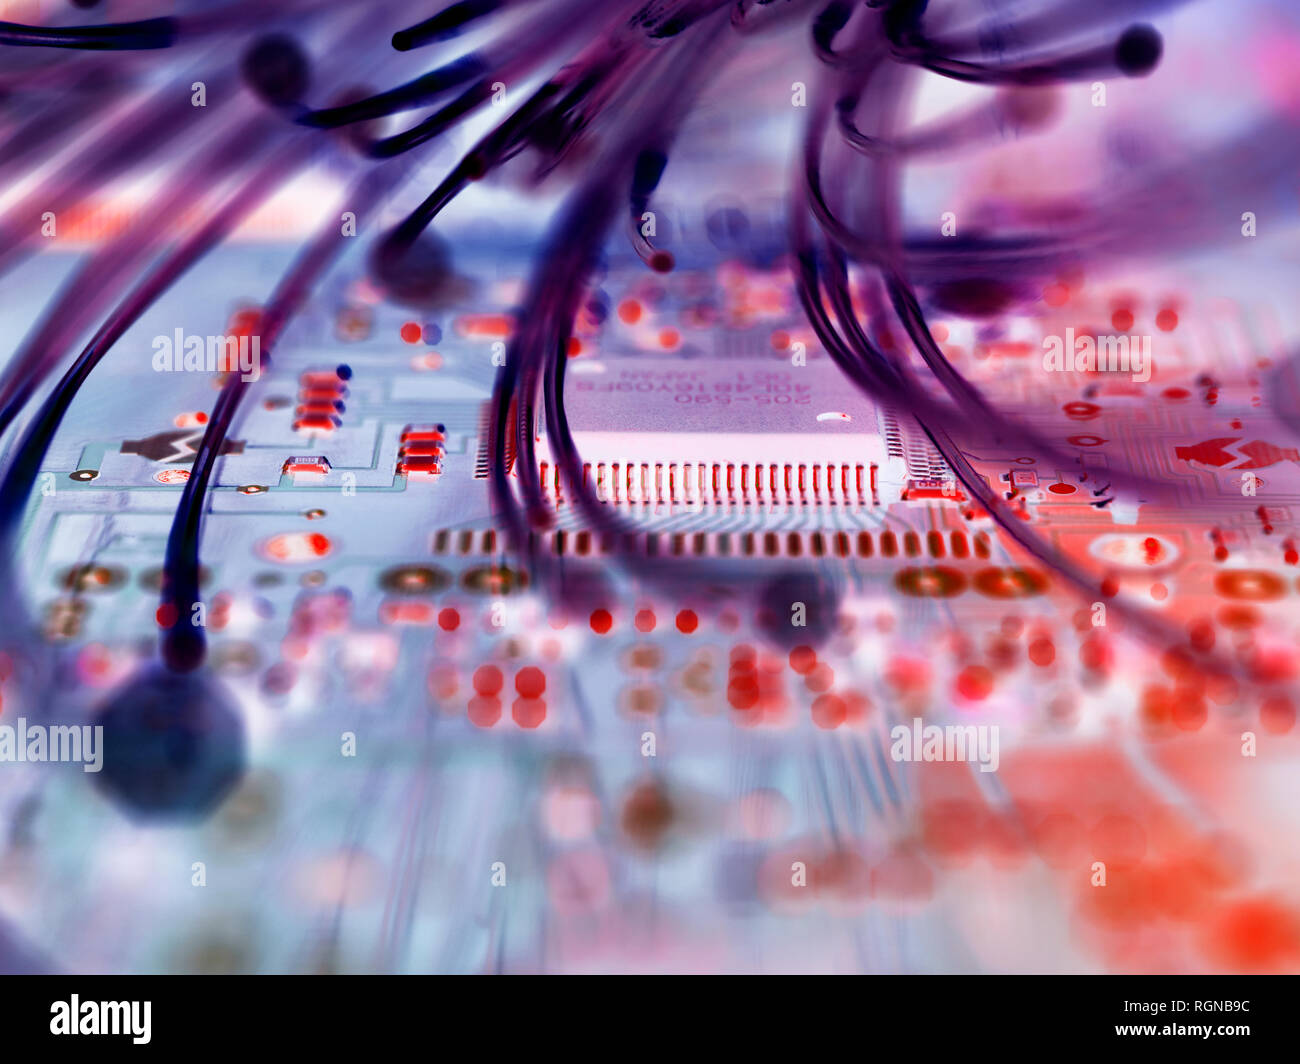 Fibre optics attacking electronic circuit boards with a virus - Stock Image